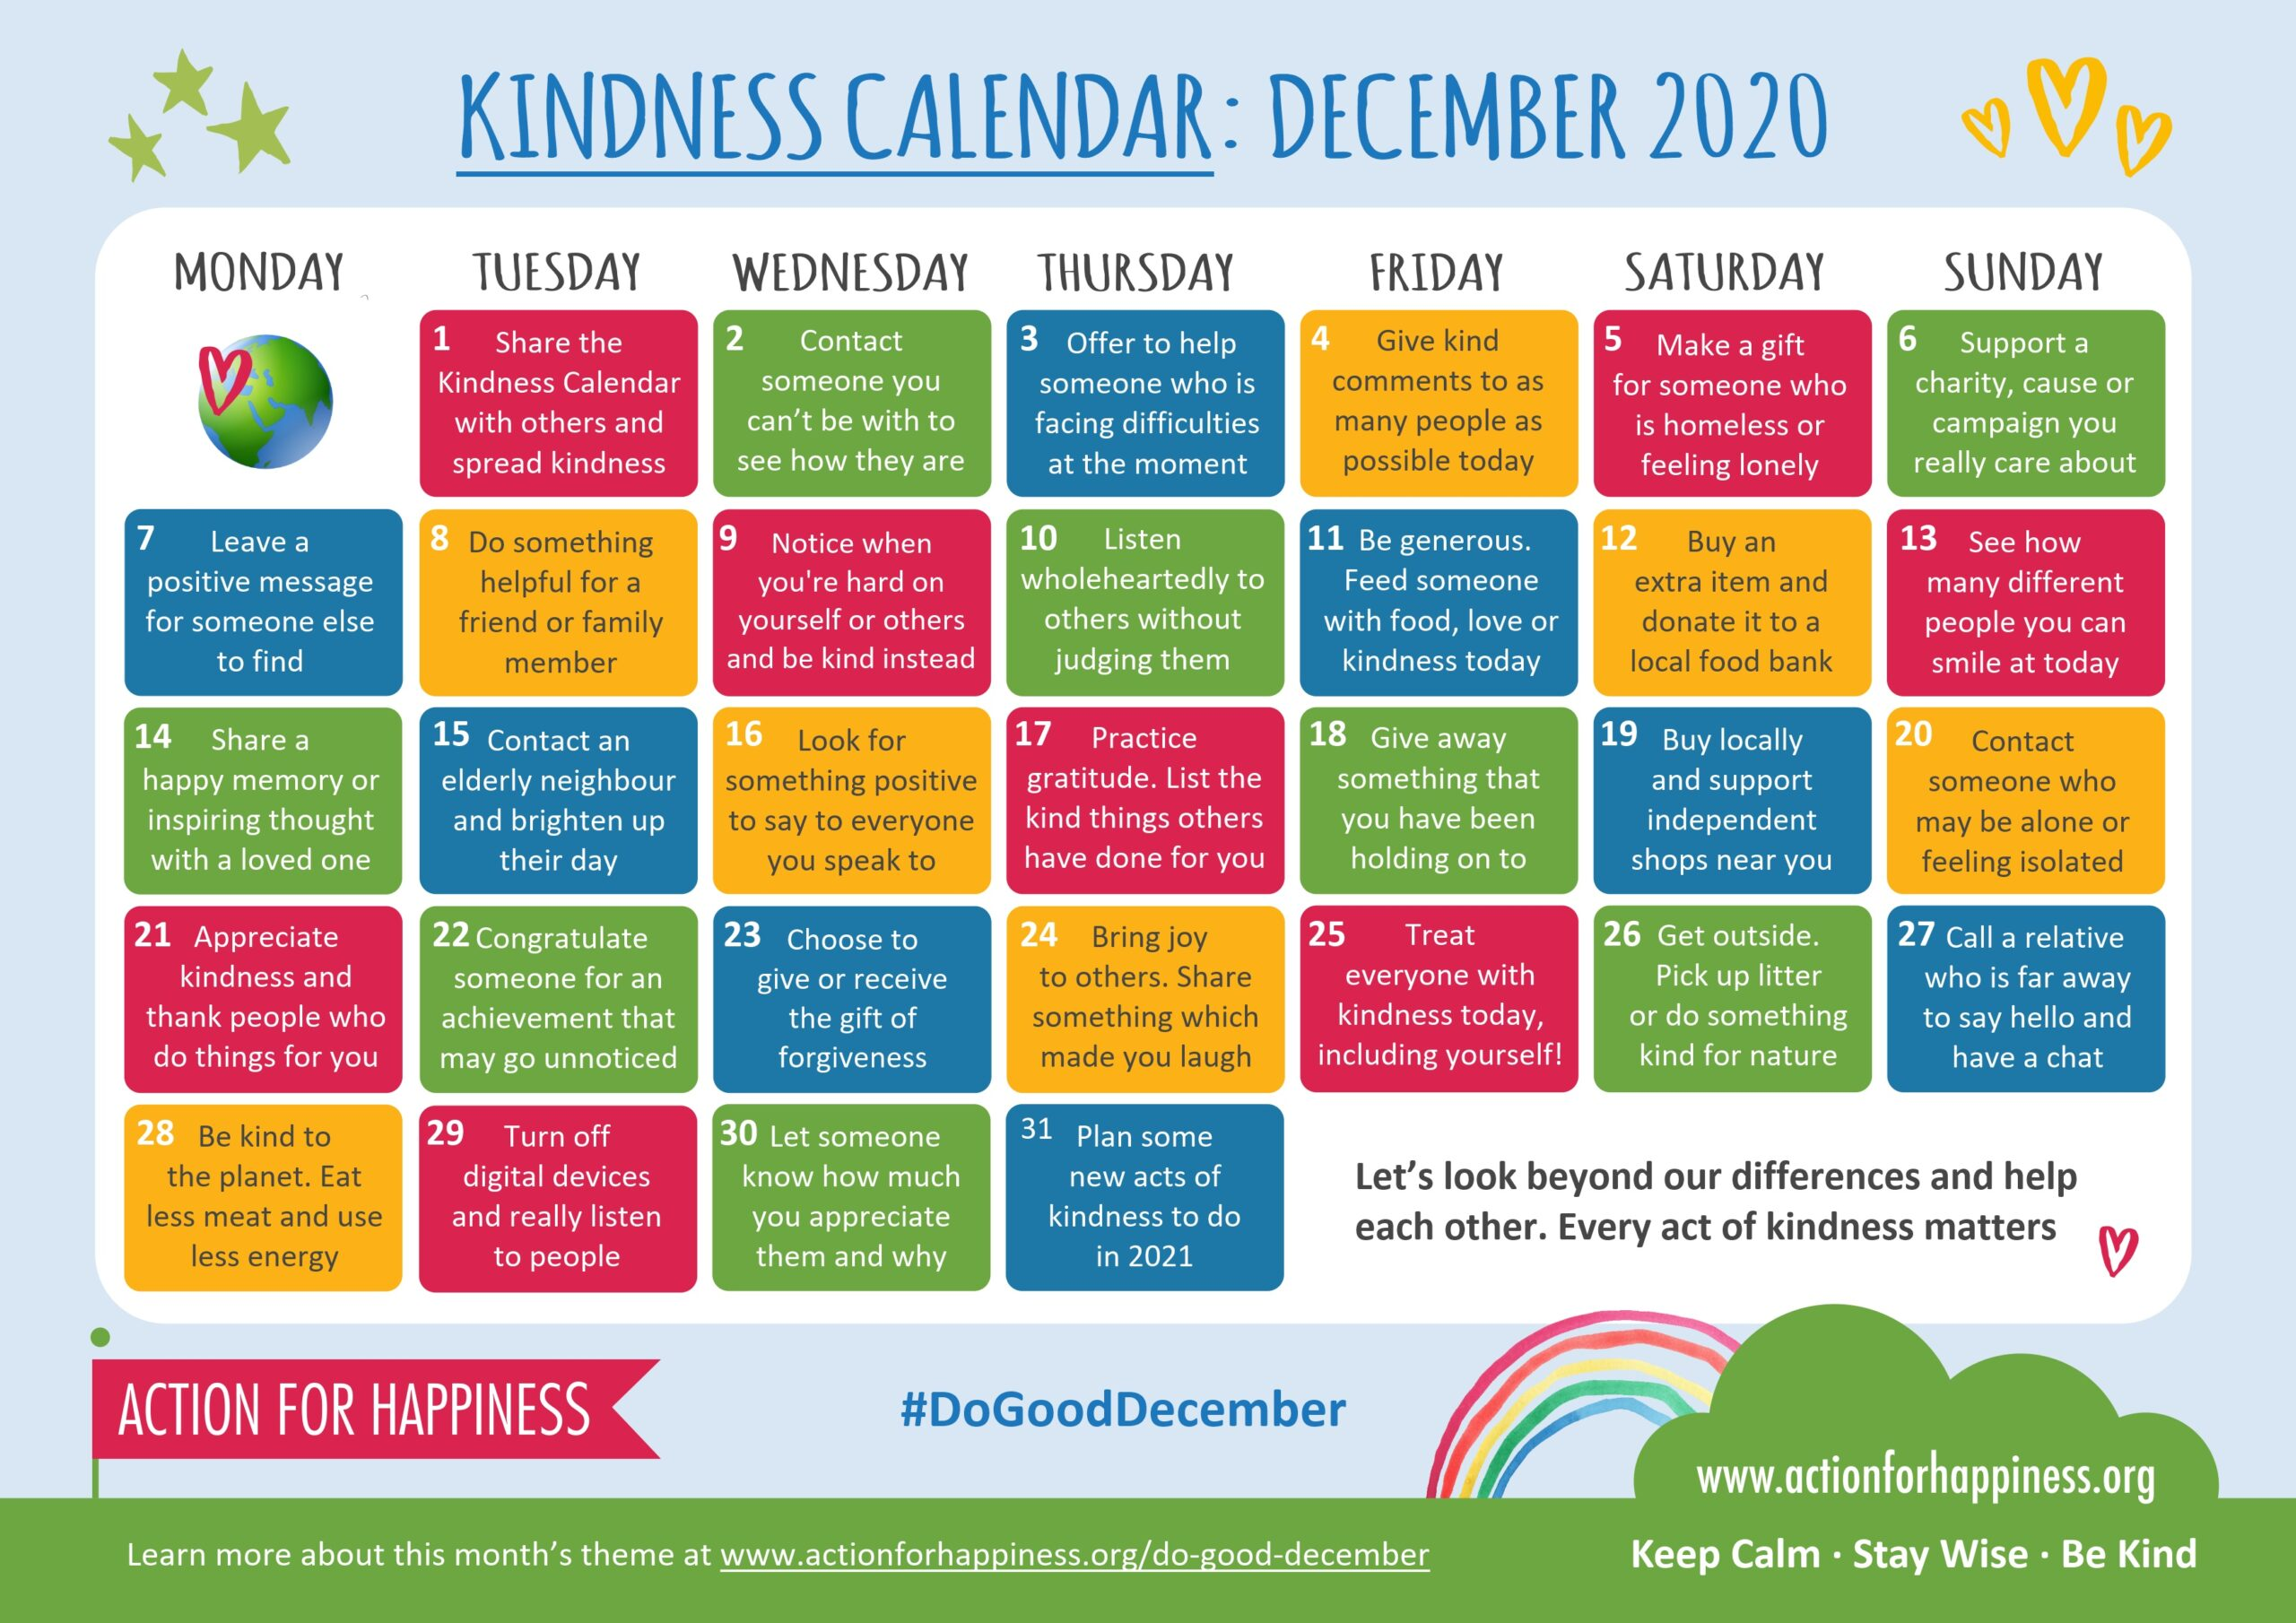 action for happiness calendar Dec